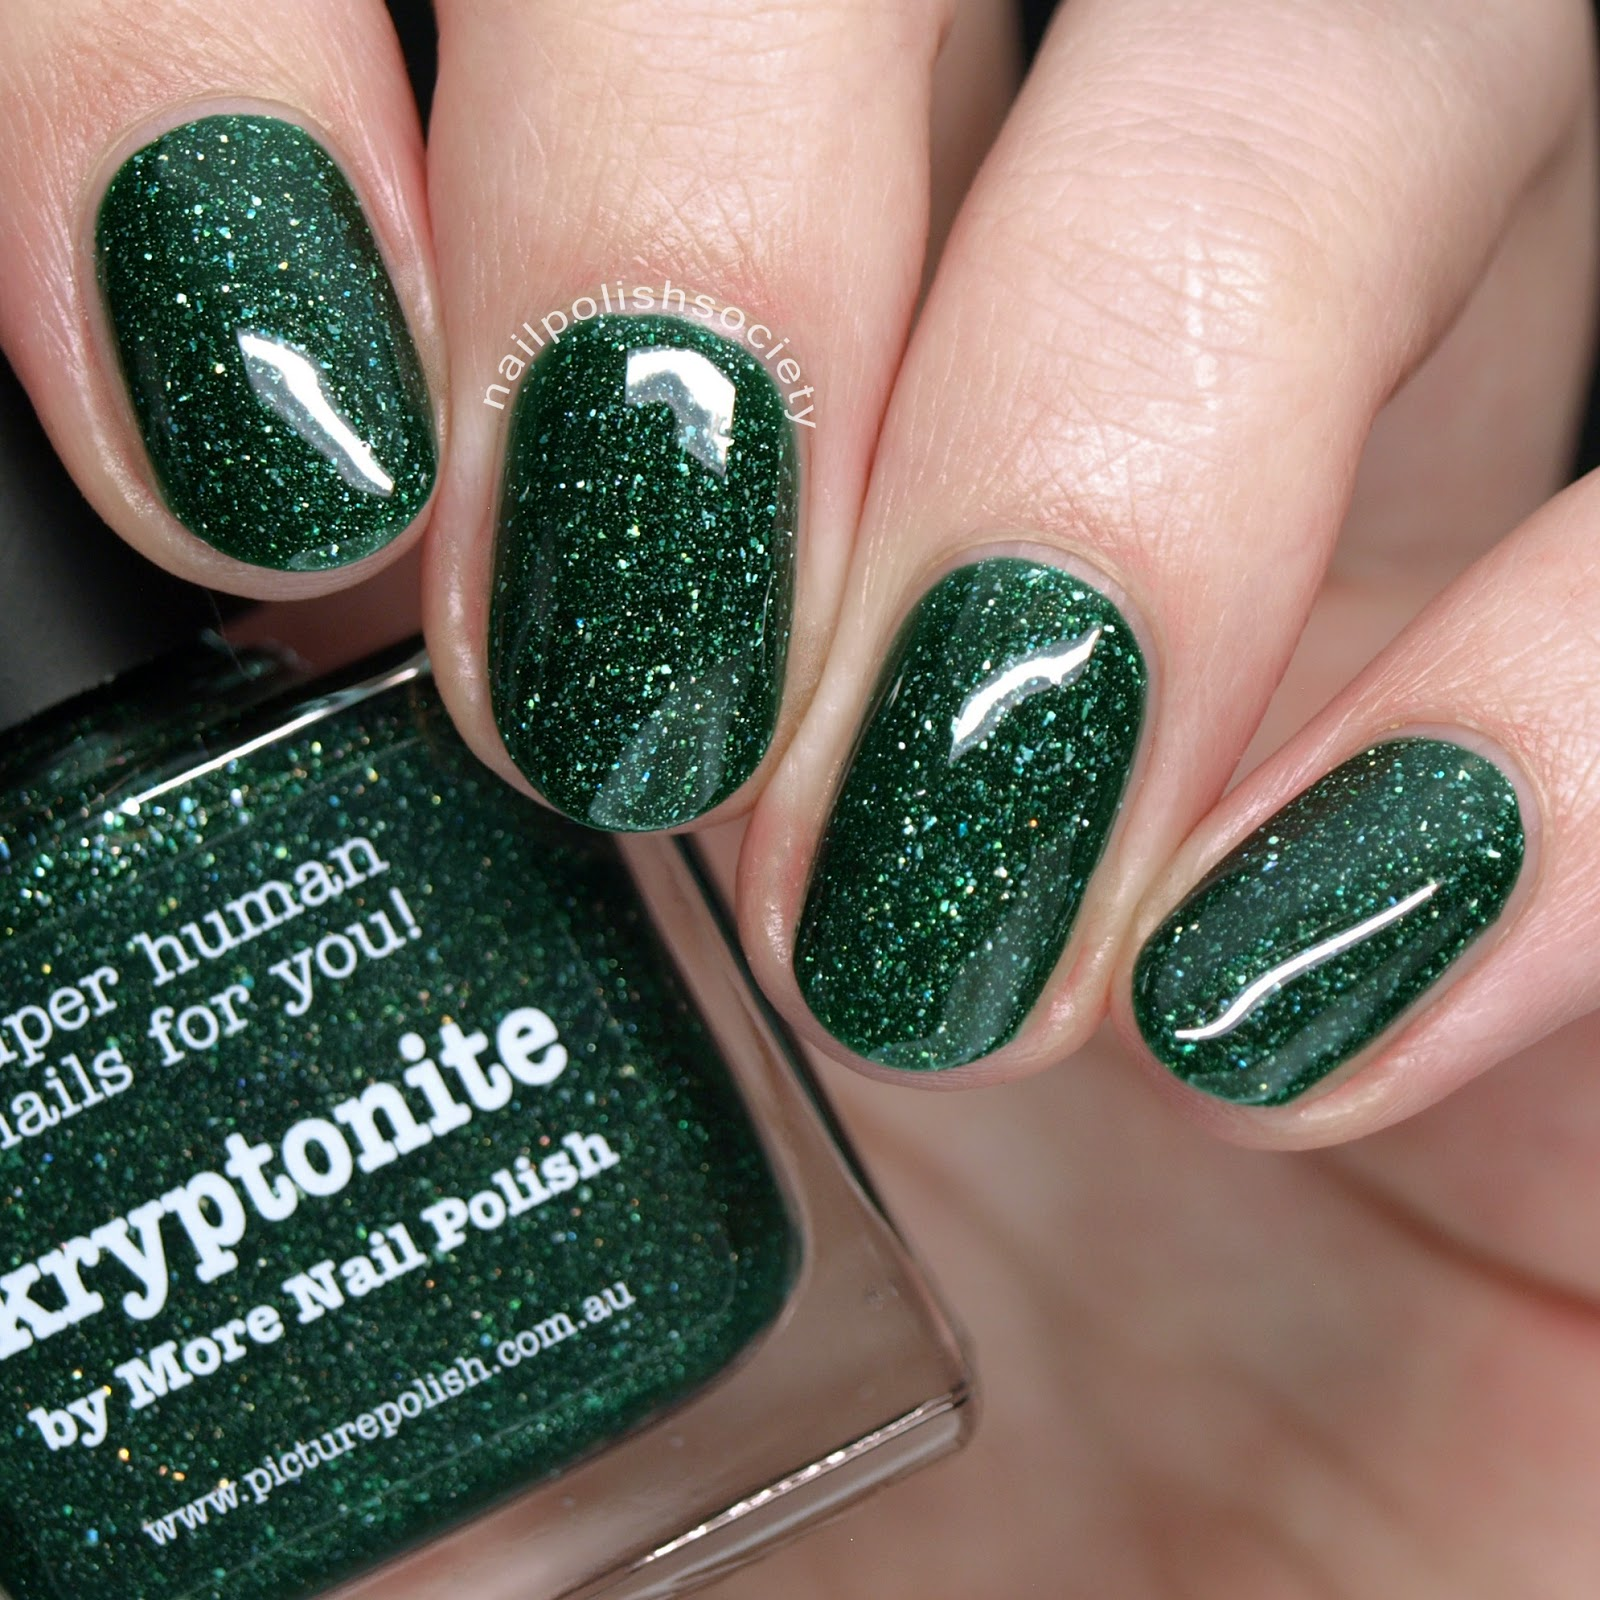 Nail Polish Society: 15 Gorgeous Green Nail Polishes for St ...